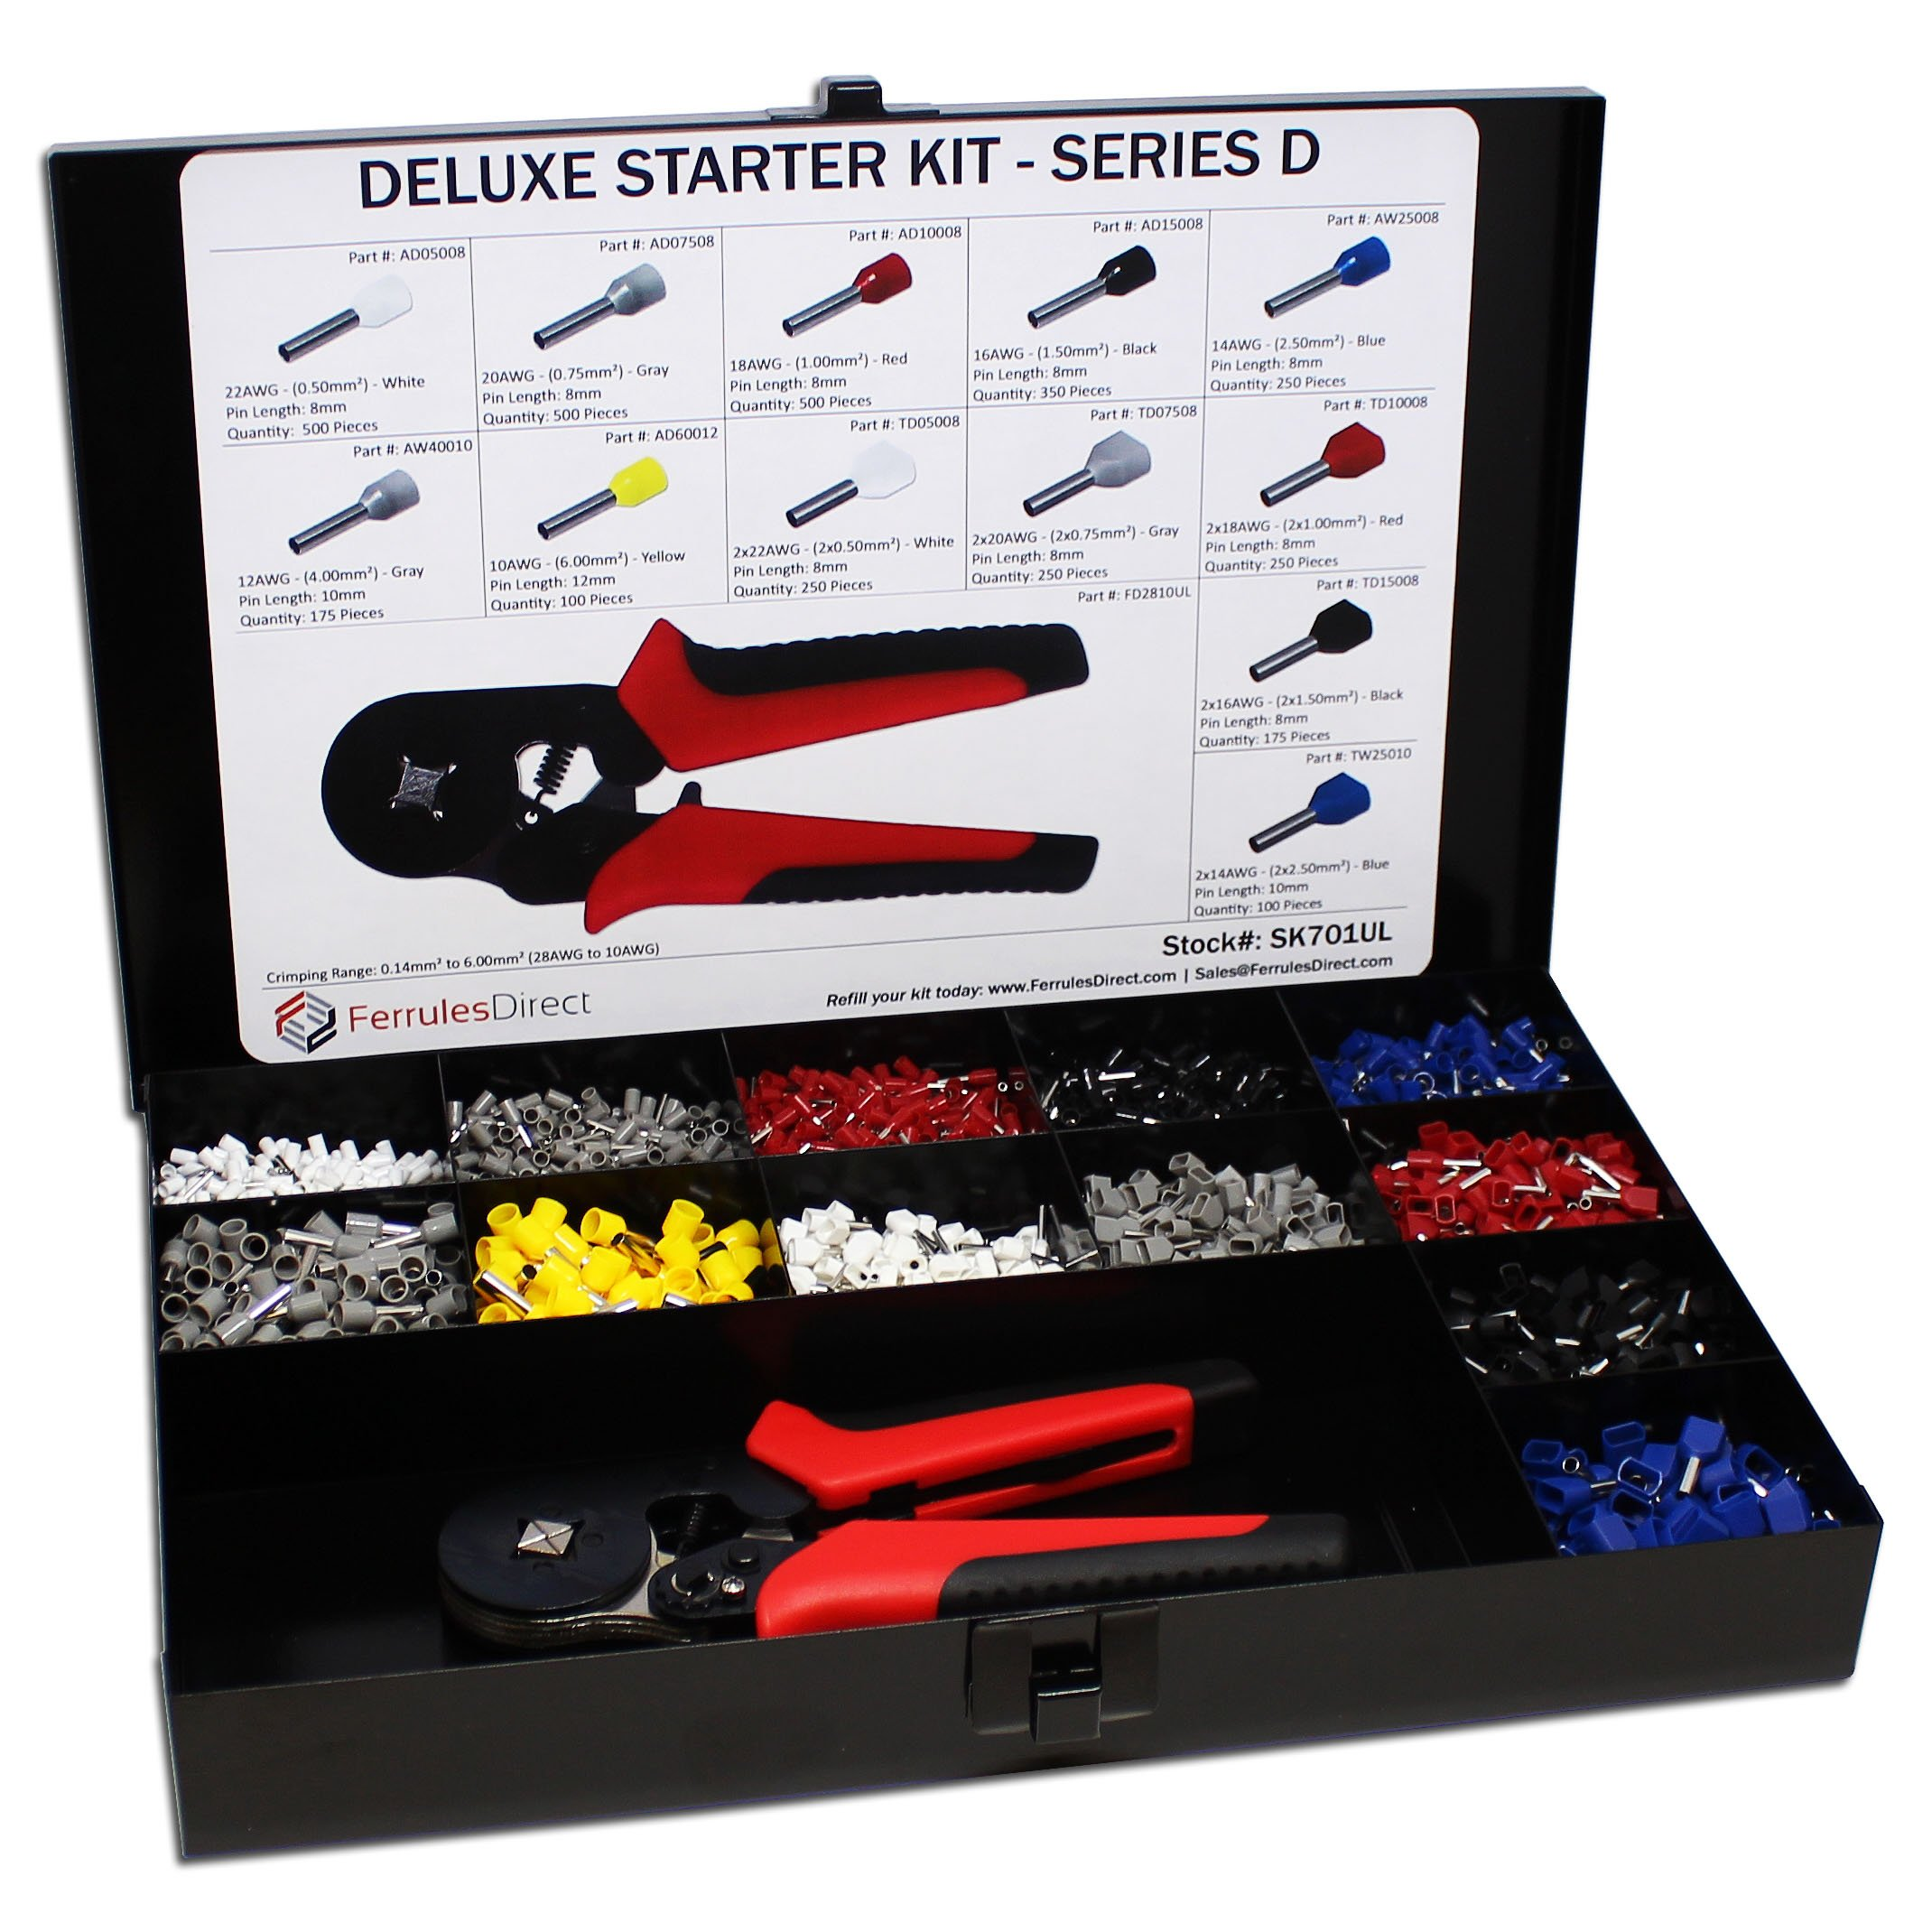 3450 Piece Wire Ferrules Starter Kit with Self Adjusting Tool 22 AWG to 10 AWG Insulated Connectors-SK701UL